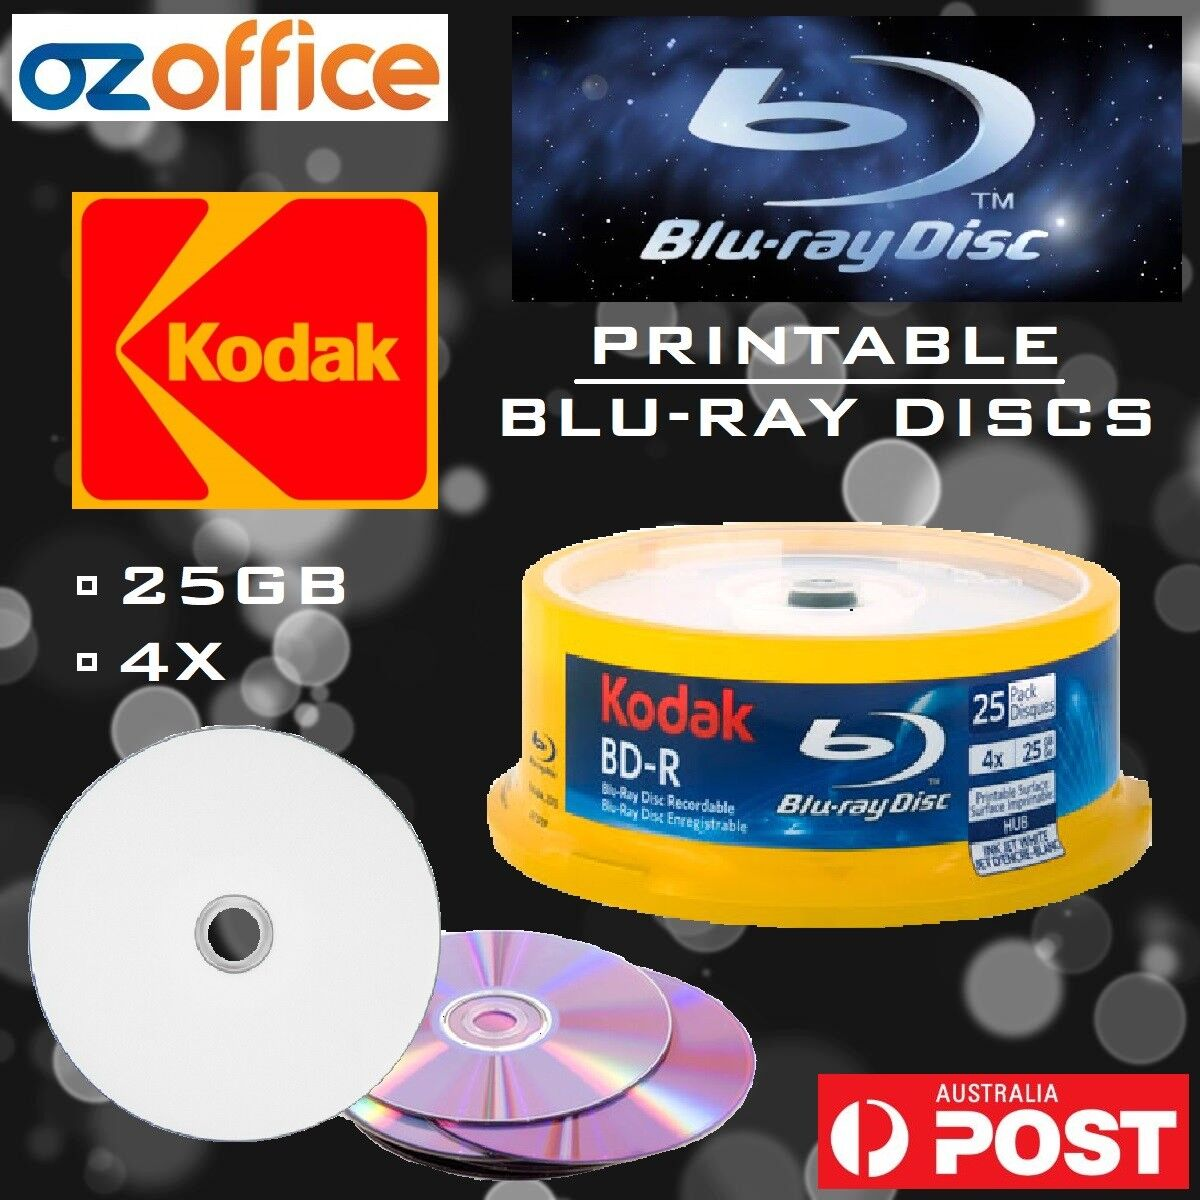 picture relating to Printable Blu Ray Discs known as Info over KODAK Blank Blu-Ray Discs 25GB BDR 4X White Inkjet Printable Disc